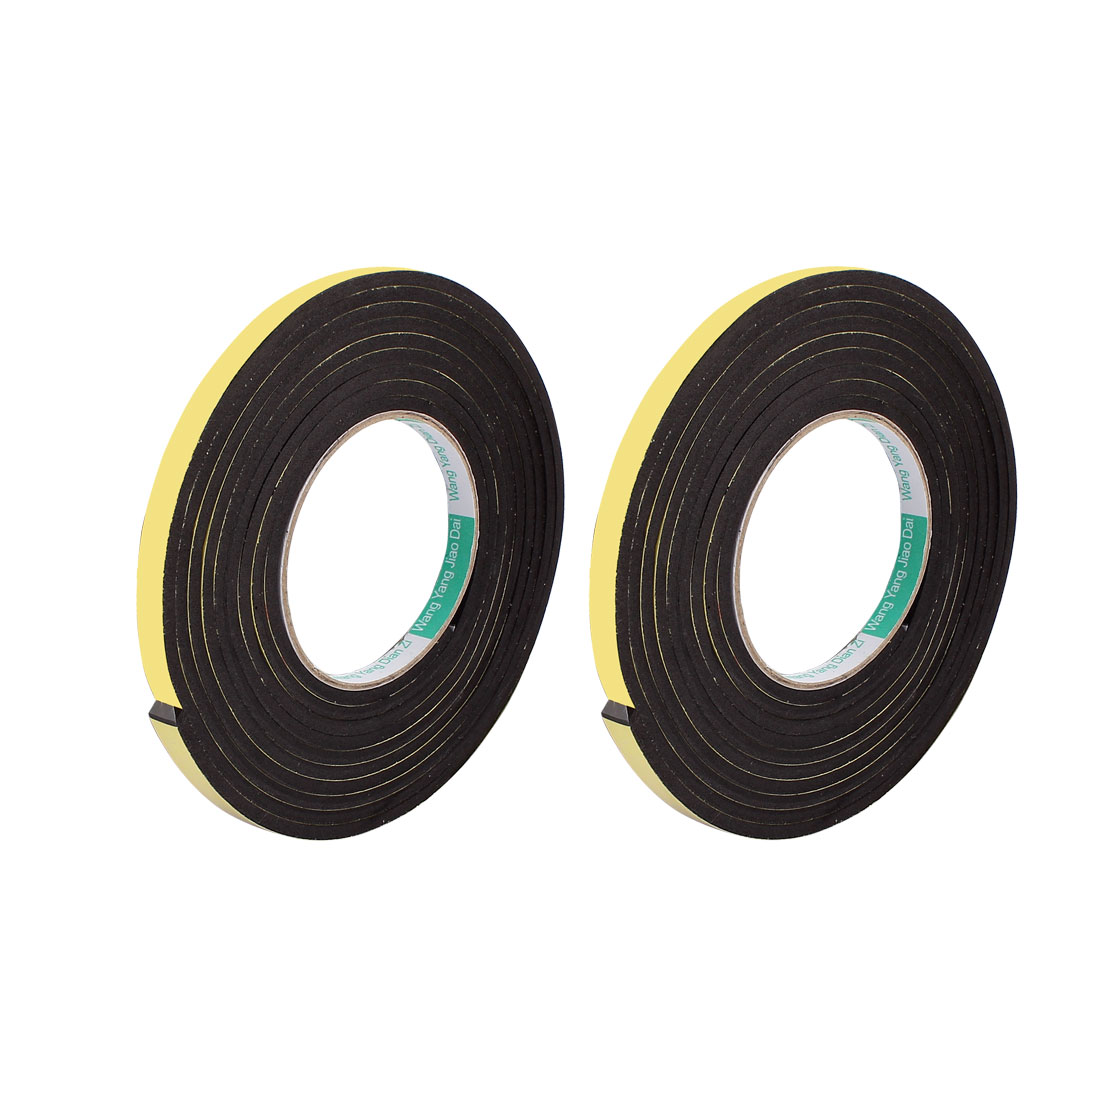 2 Pcs 10mmx4mm Single Sided Sponge Tape Adhesive Sticker Foam Glue Strip Sealing 3 Meters 10Ft